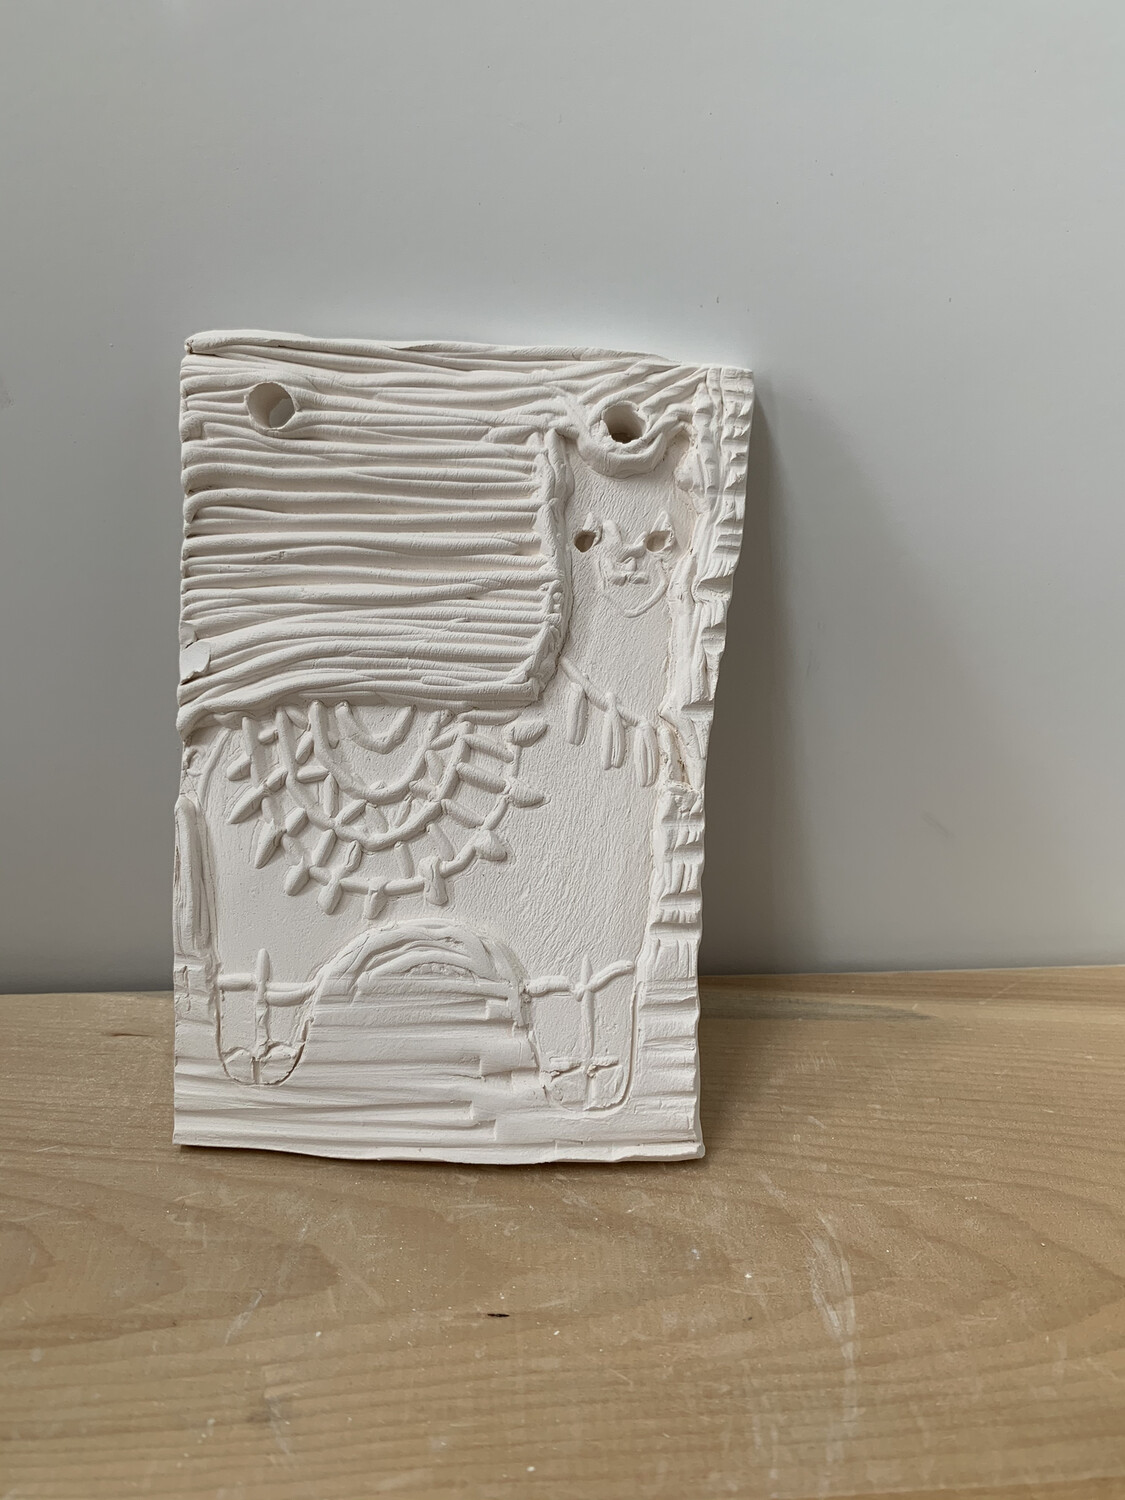 Paint Your Own Pottery - Ceramic  Llama Tile  Painting Kit